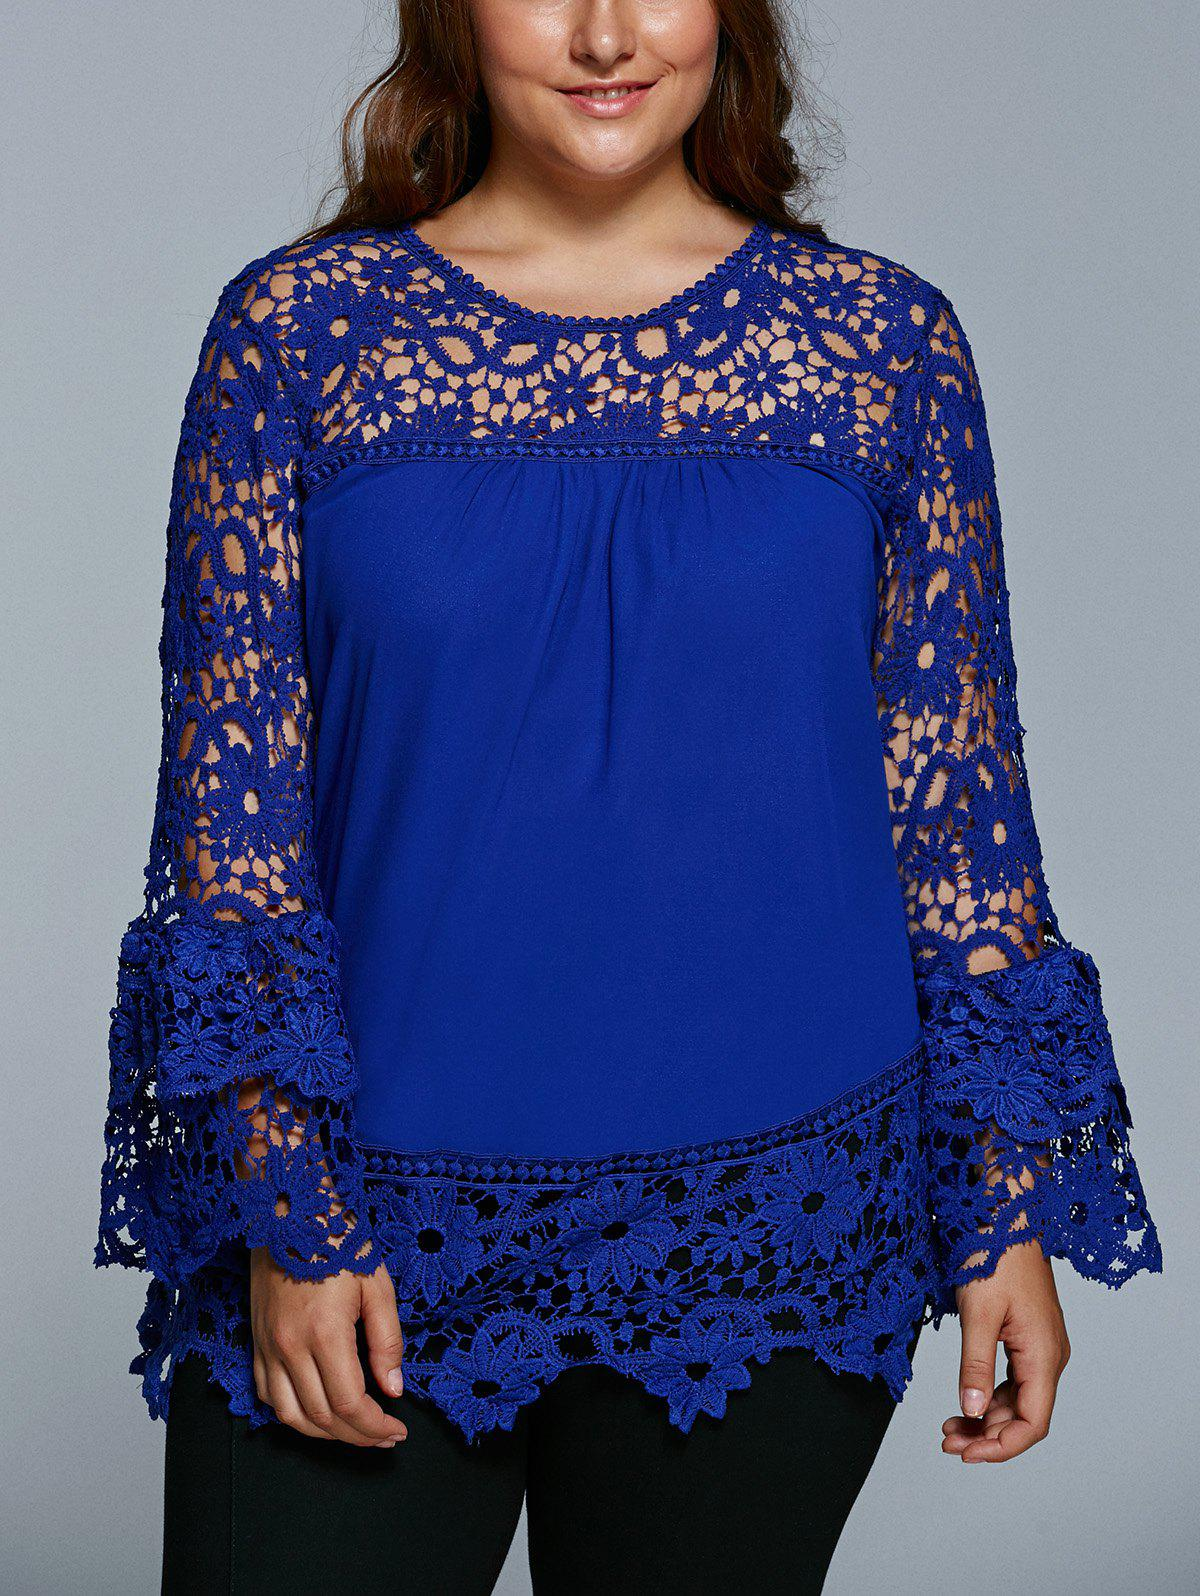 Lace Spliced Hollow Out Plus Size BlouseWOMEN<br><br>Size: 3XL; Color: SAPPHIRE BLUE; Material: Lace,Polyester; Shirt Length: Regular; Sleeve Length: Full; Collar: Jewel Neck; Style: Fashion; Season: Fall,Spring; Pattern Type: Patchwork; Weight: 0.3500kg; Package Contents: 1 x Blouse;